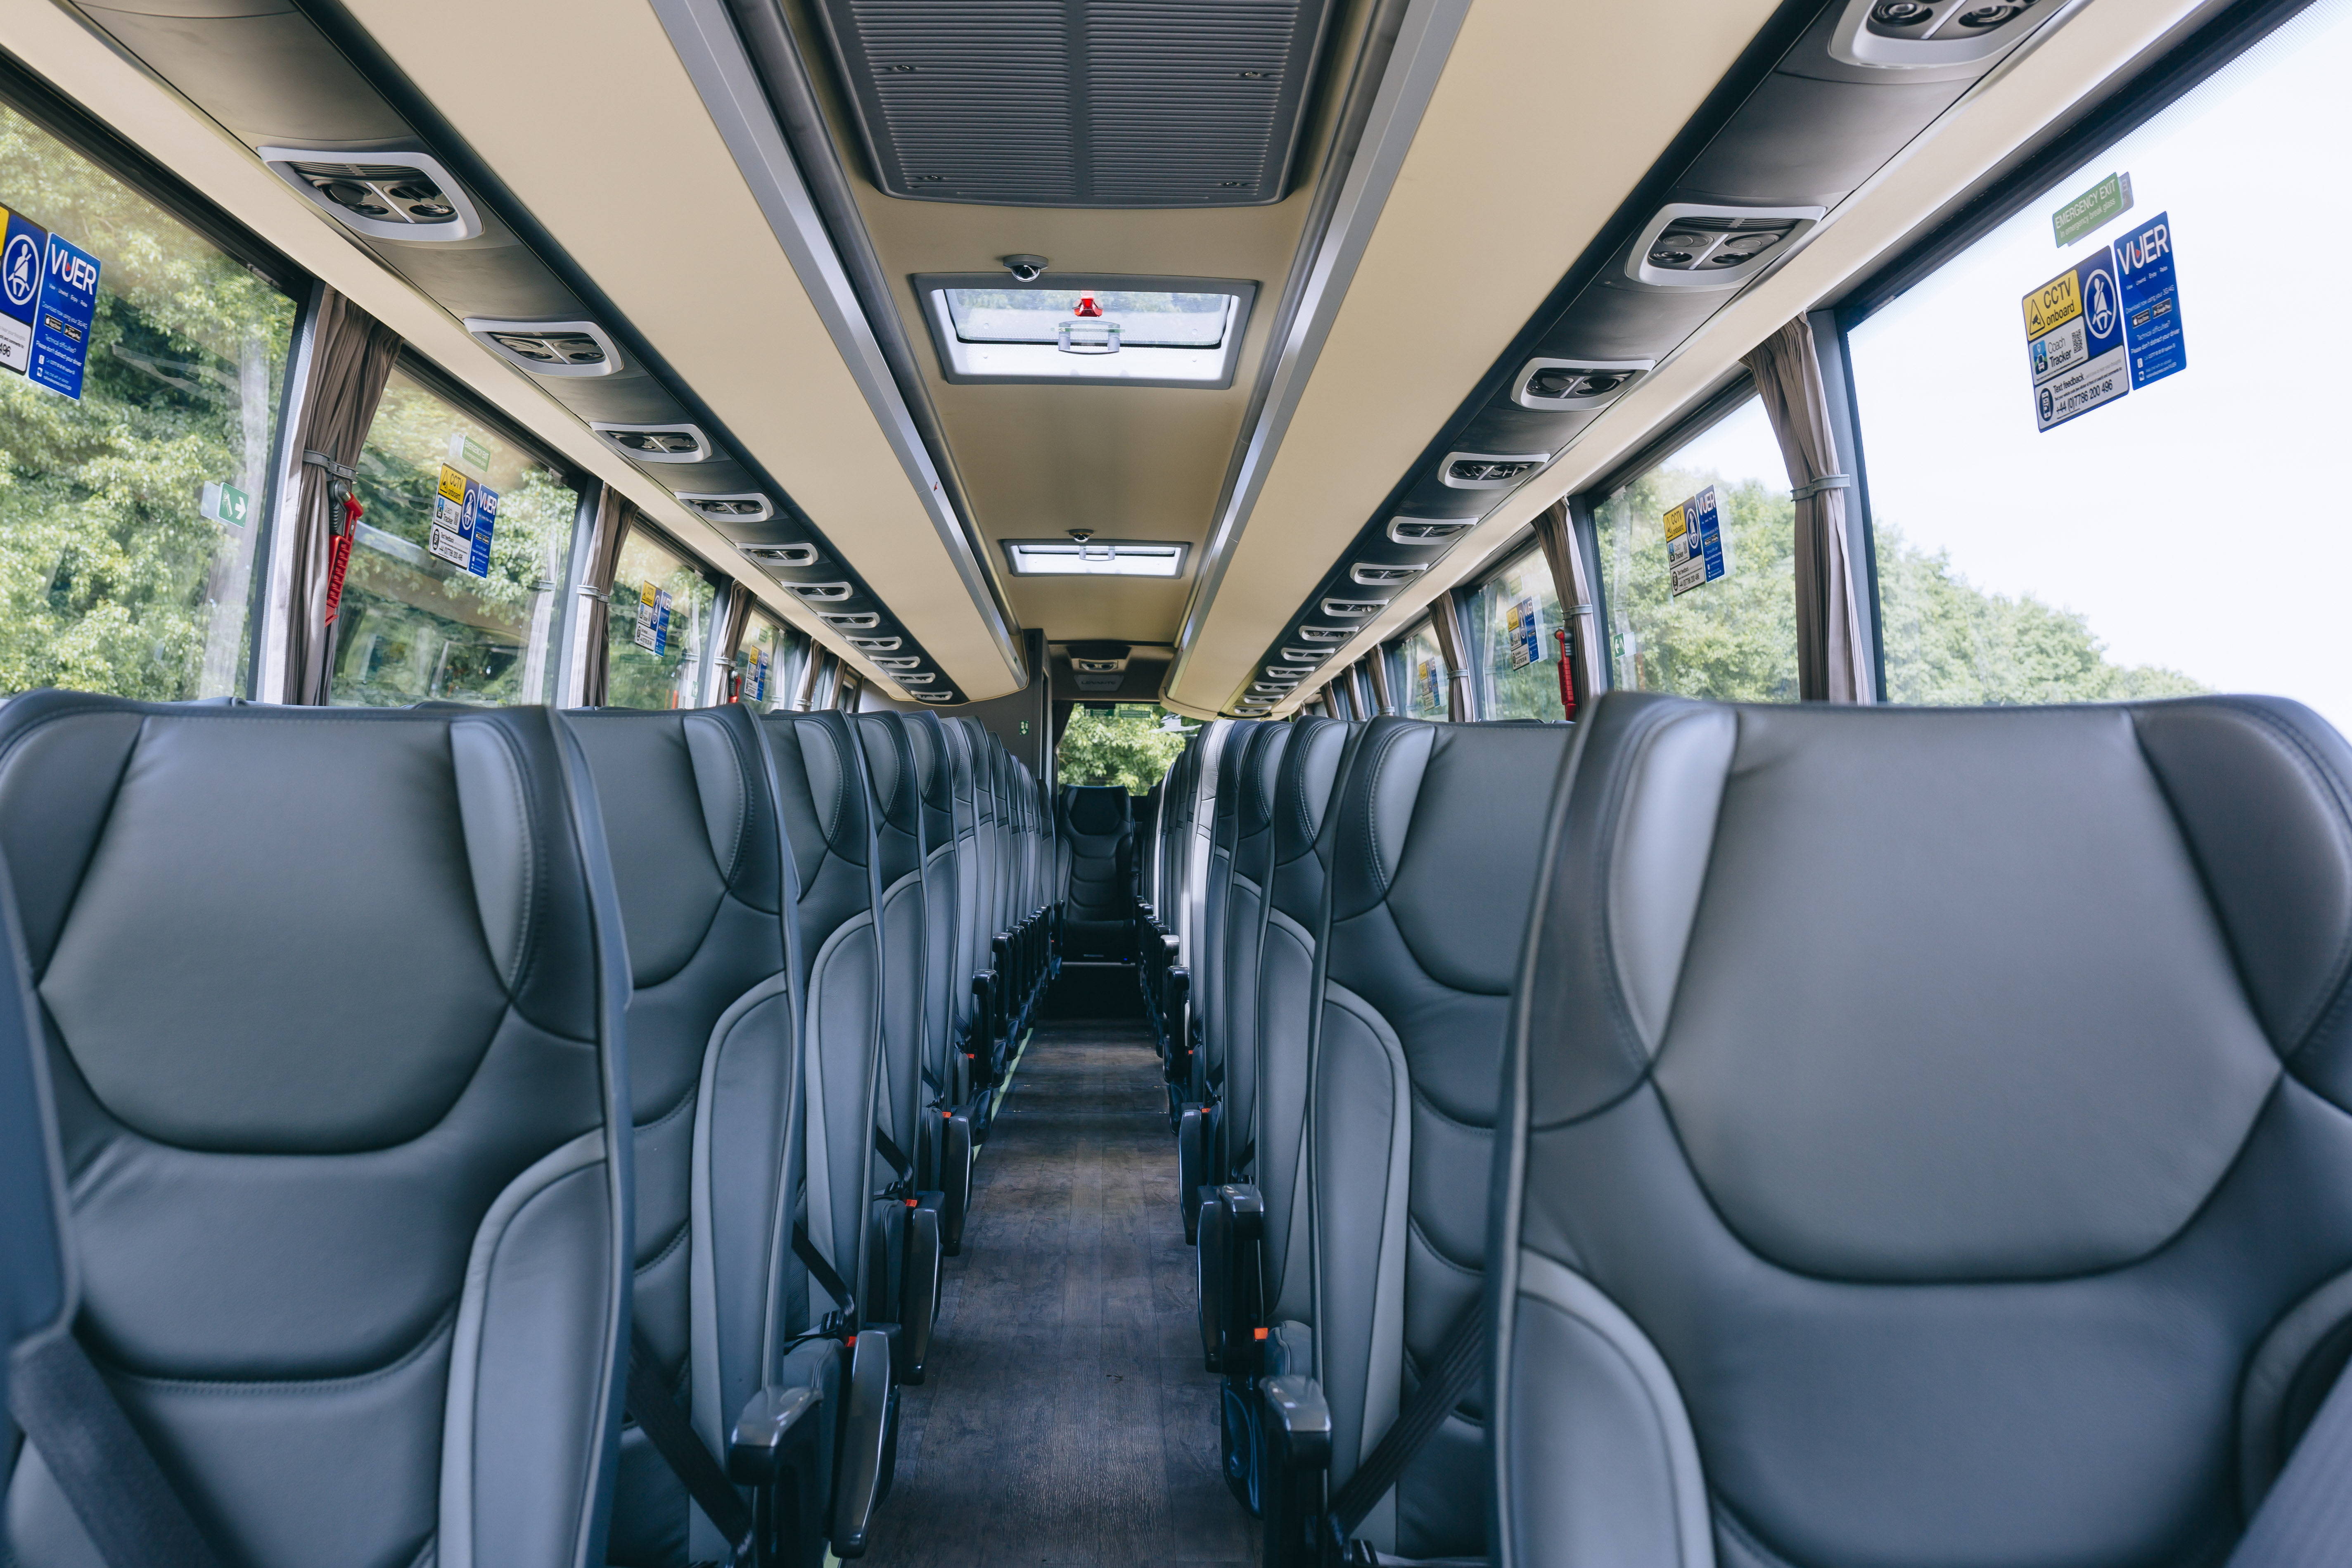 how to download national express tickets